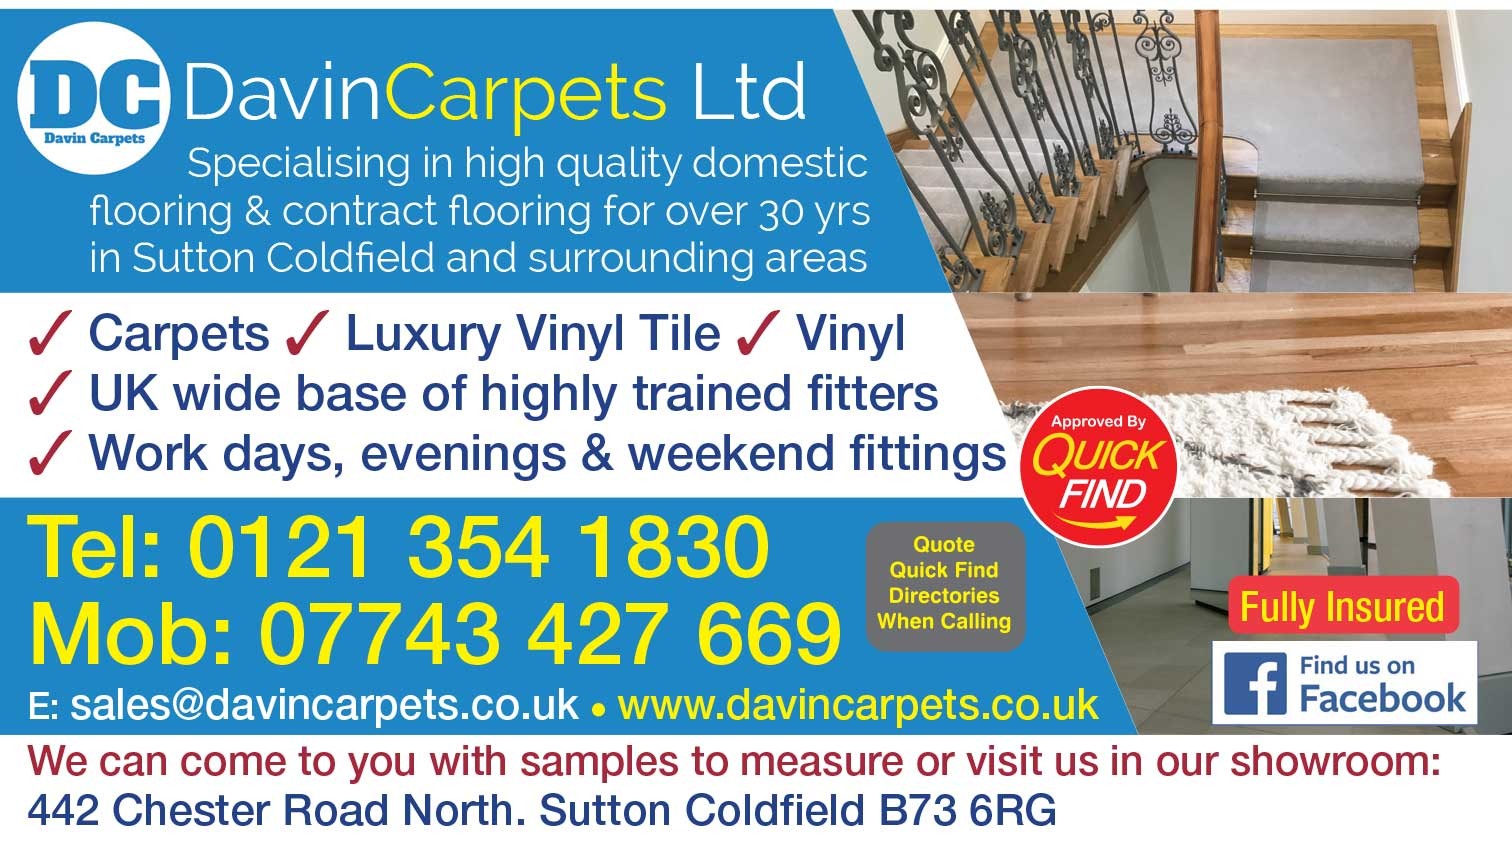 David Carpets Ltd